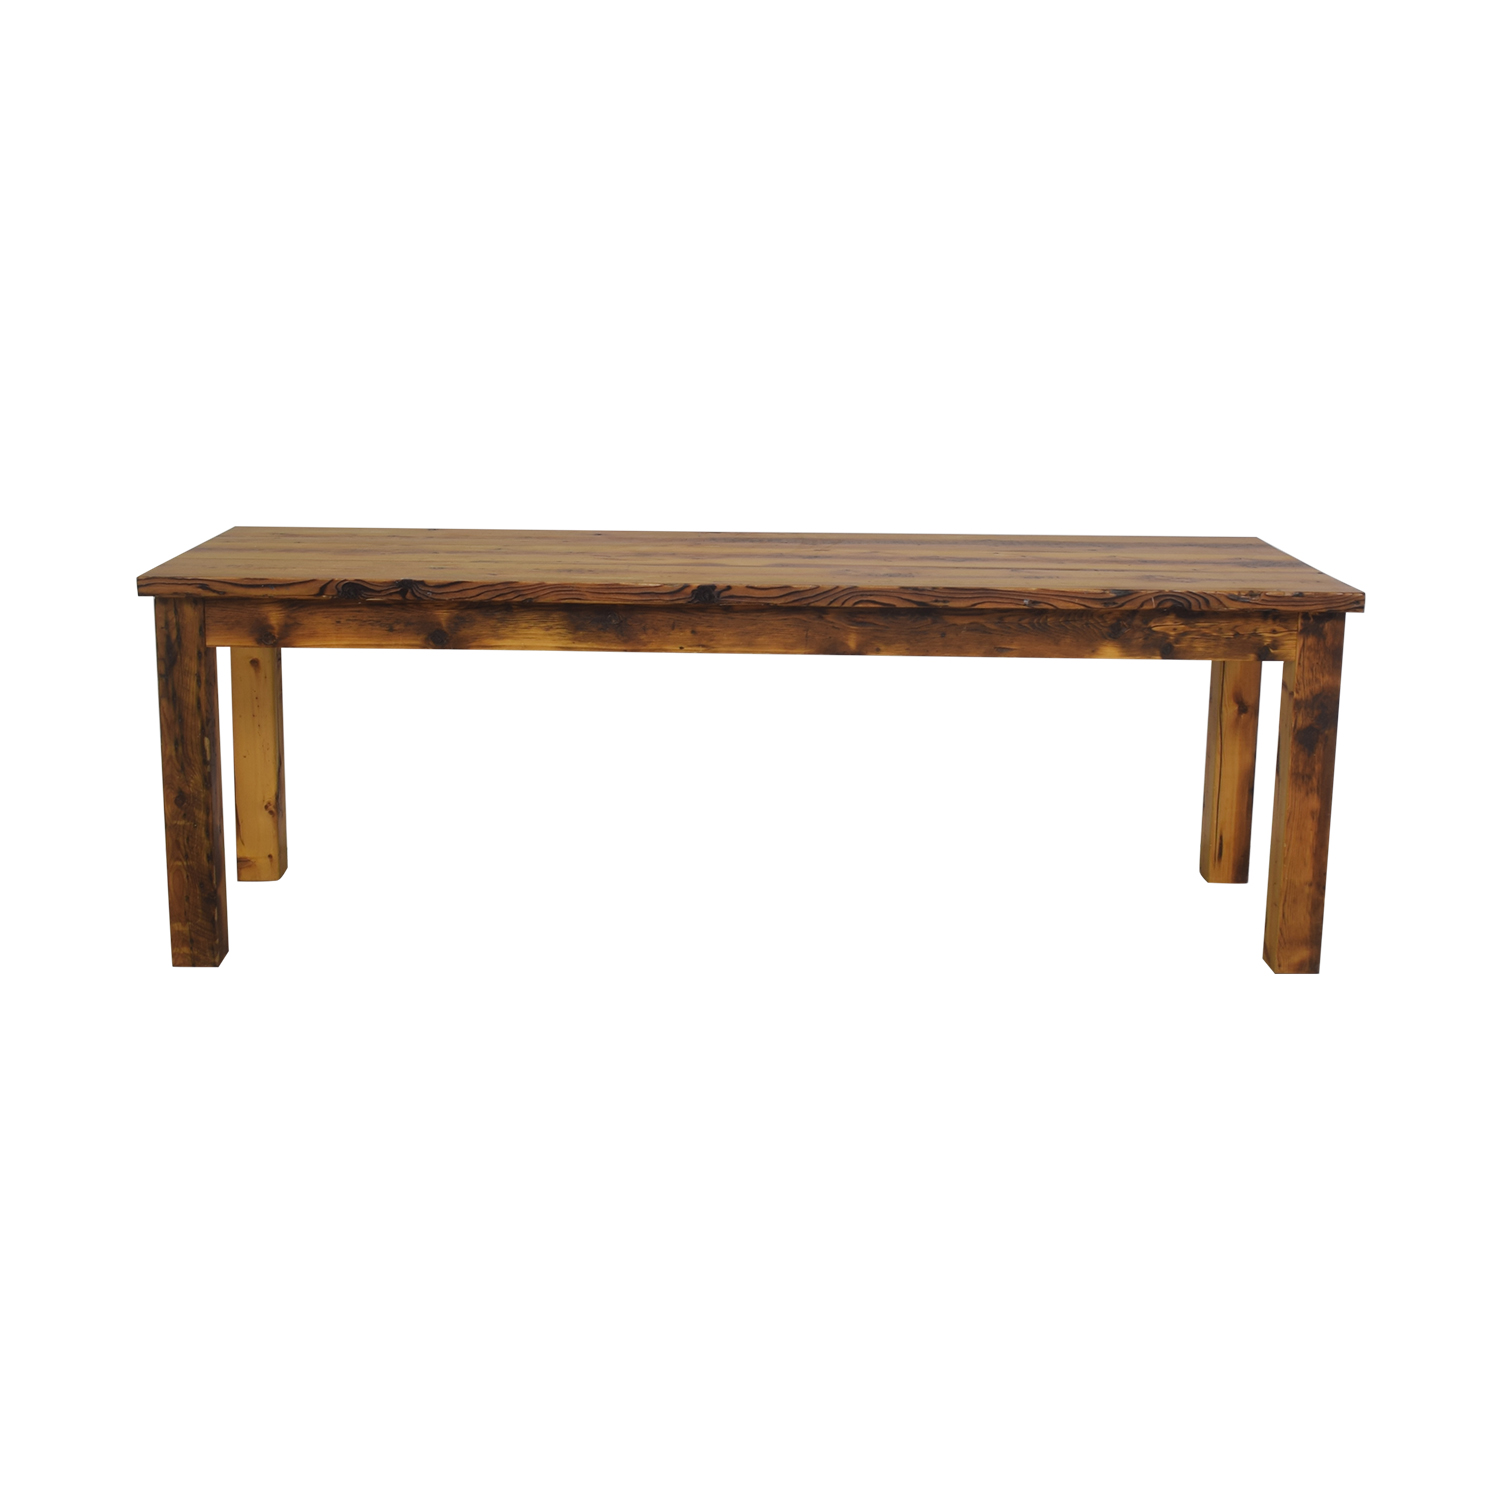 buy Olde Good Things Rustic Square Leg Farm Table Olde Good Things